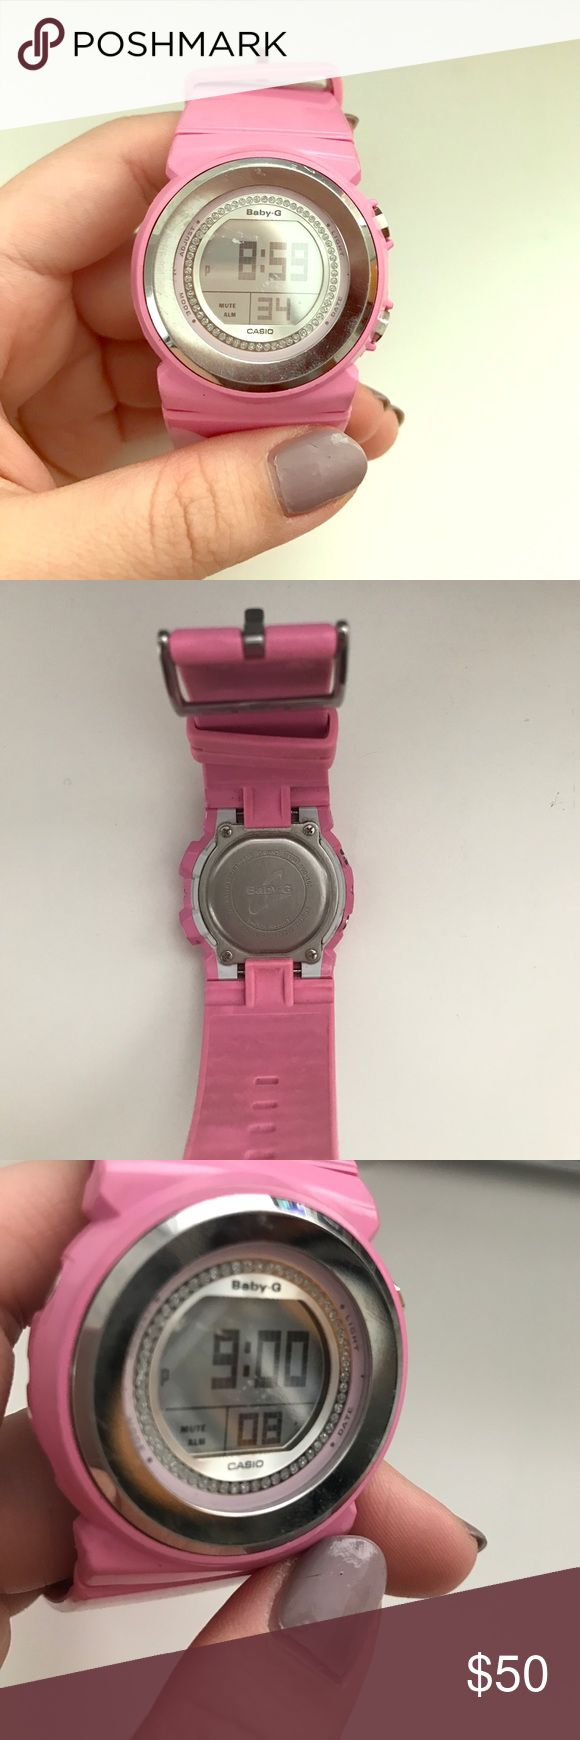 Casio Hot Pink Baby G Watch This was limited edition. Shock resist. Low/no battery. Haven't used it for a few years. Casio Accessories Watches